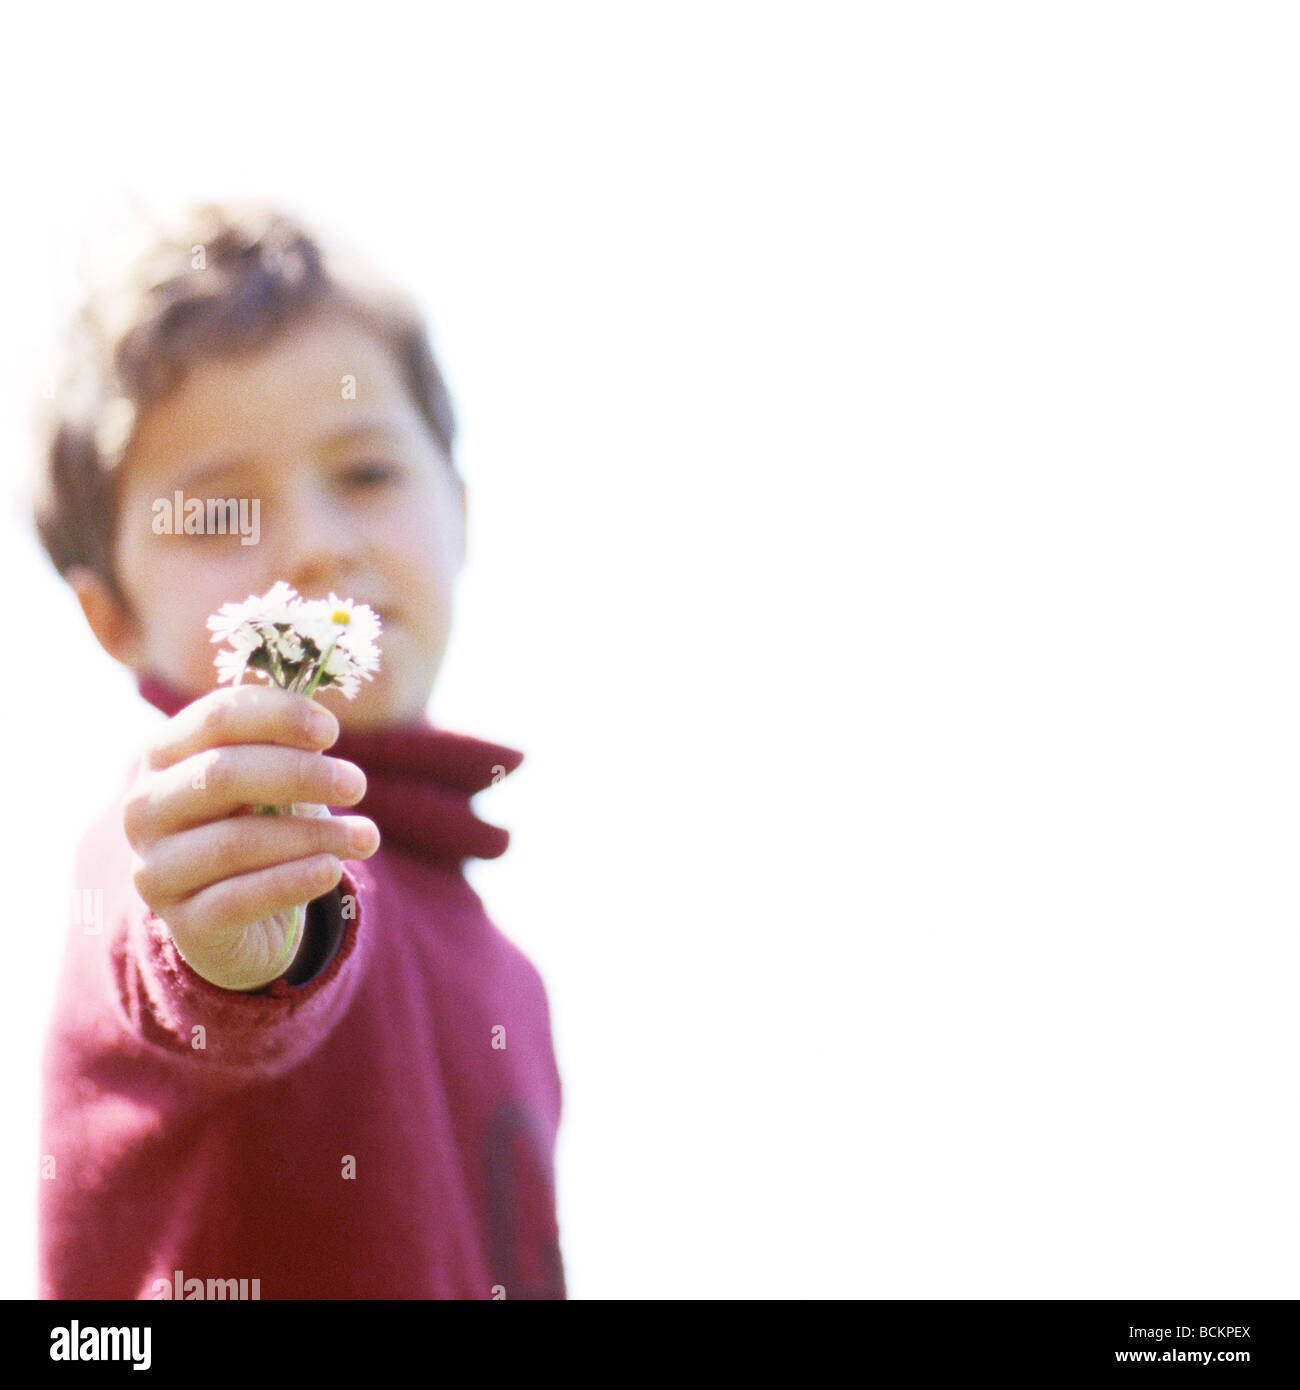 Child holding out flowers - Stock Image